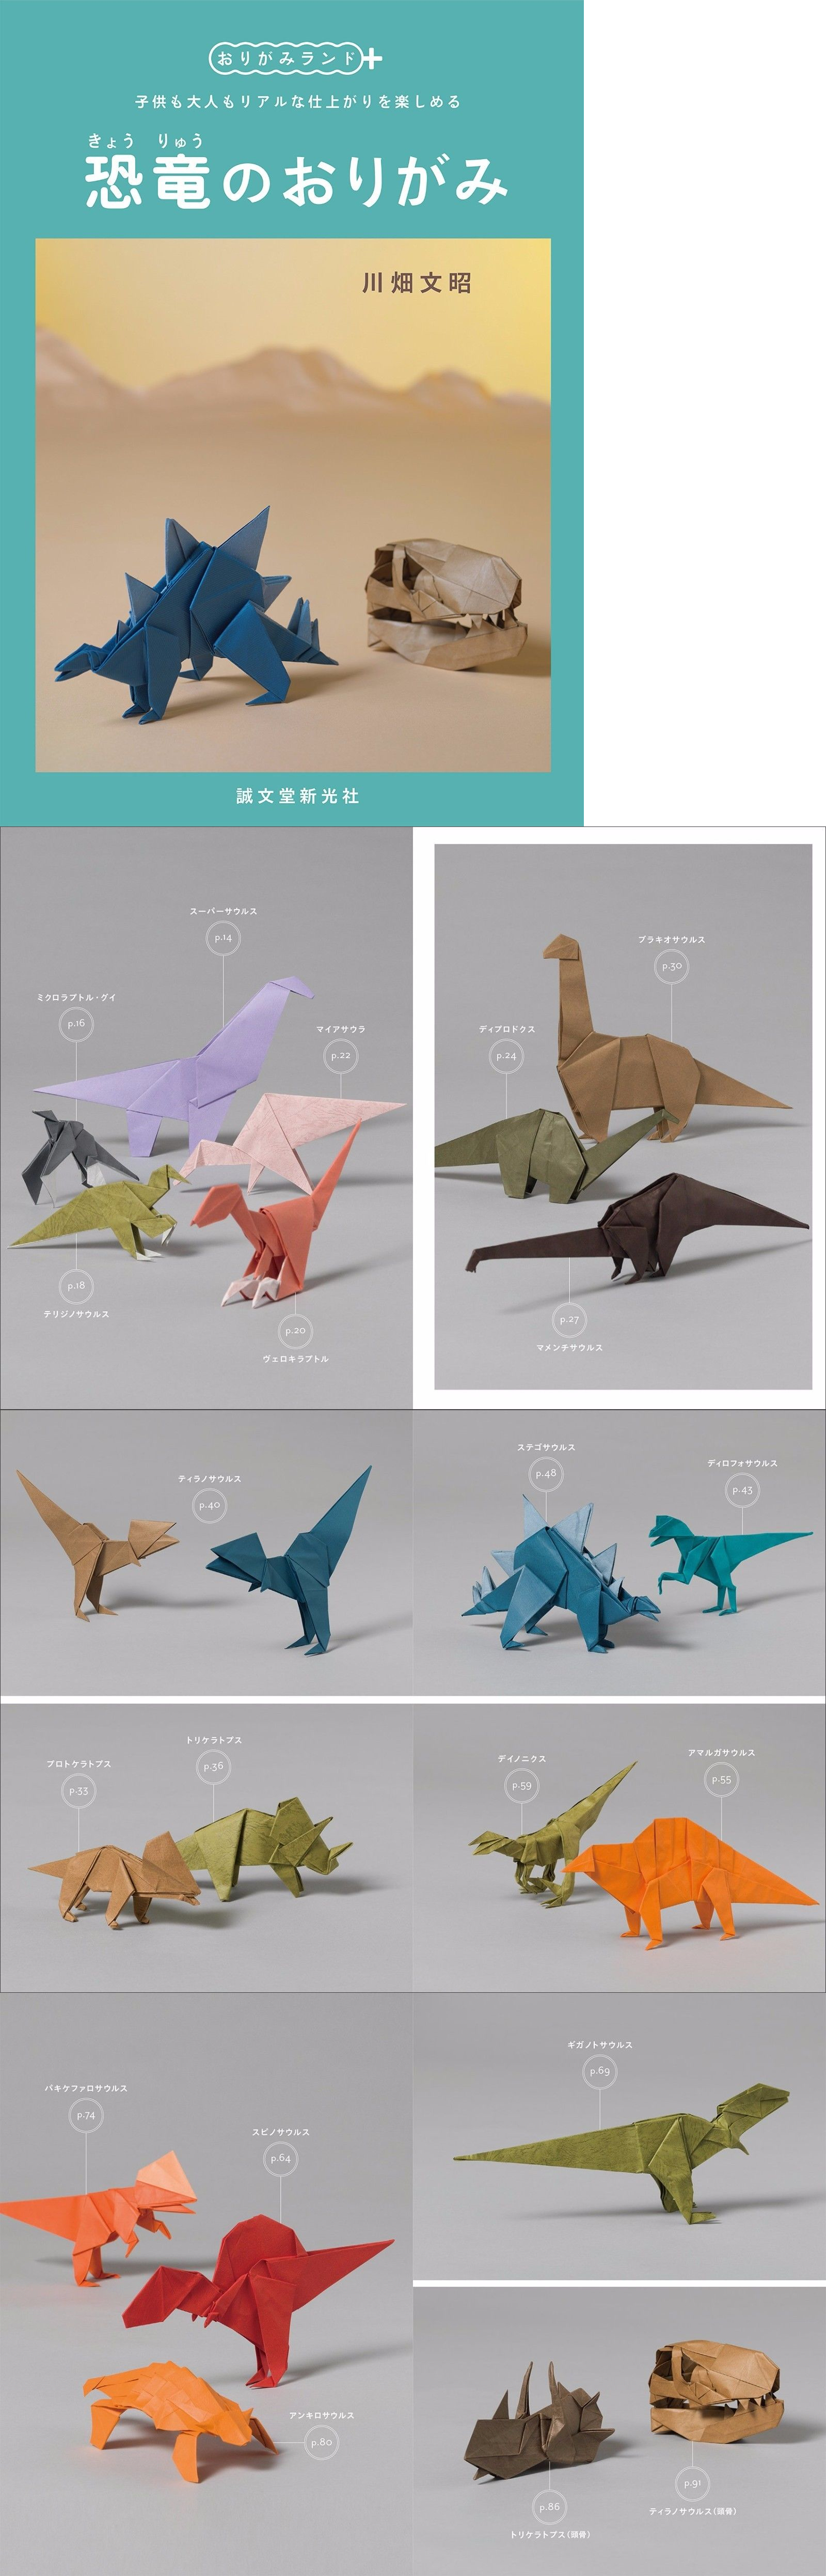 Origami 134596 New Dinosaurs Folding Diagram By Fumiaki Origamiorigami Diagramsorigami Kawahata Japanese Book Buy It Now Only 3317 On Ebay